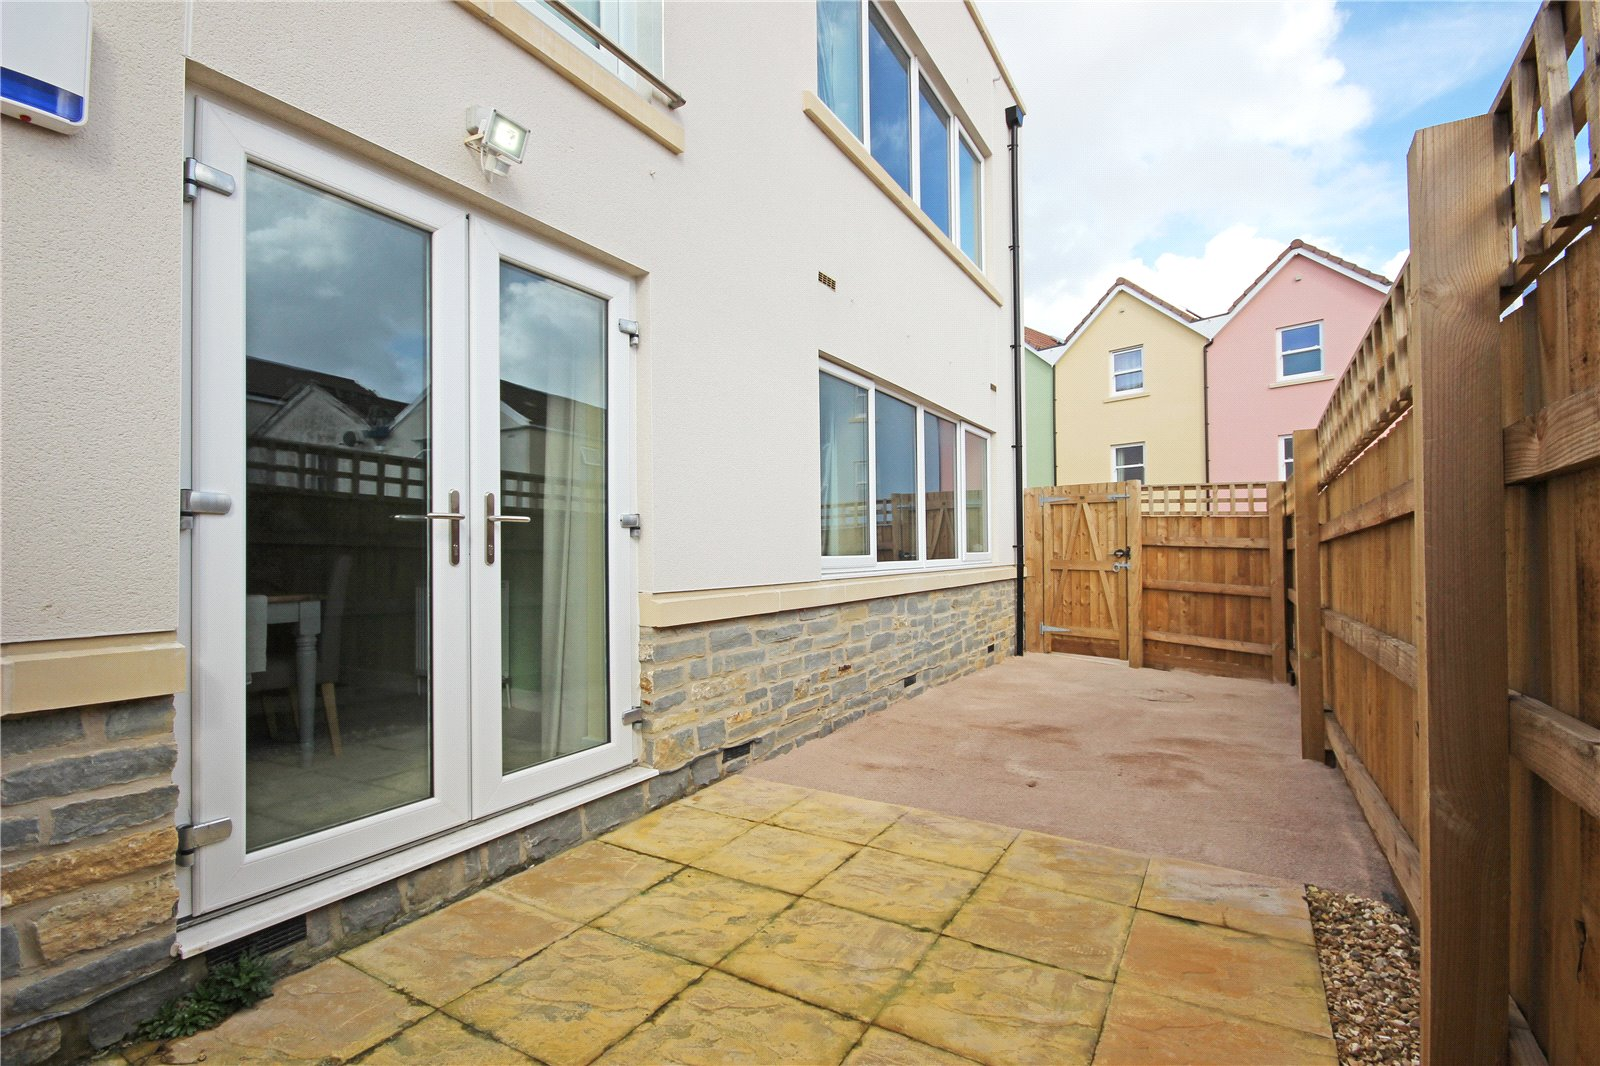 Cj Hole Bishopston 2 Bedroom Flat For Sale In Ashley Down